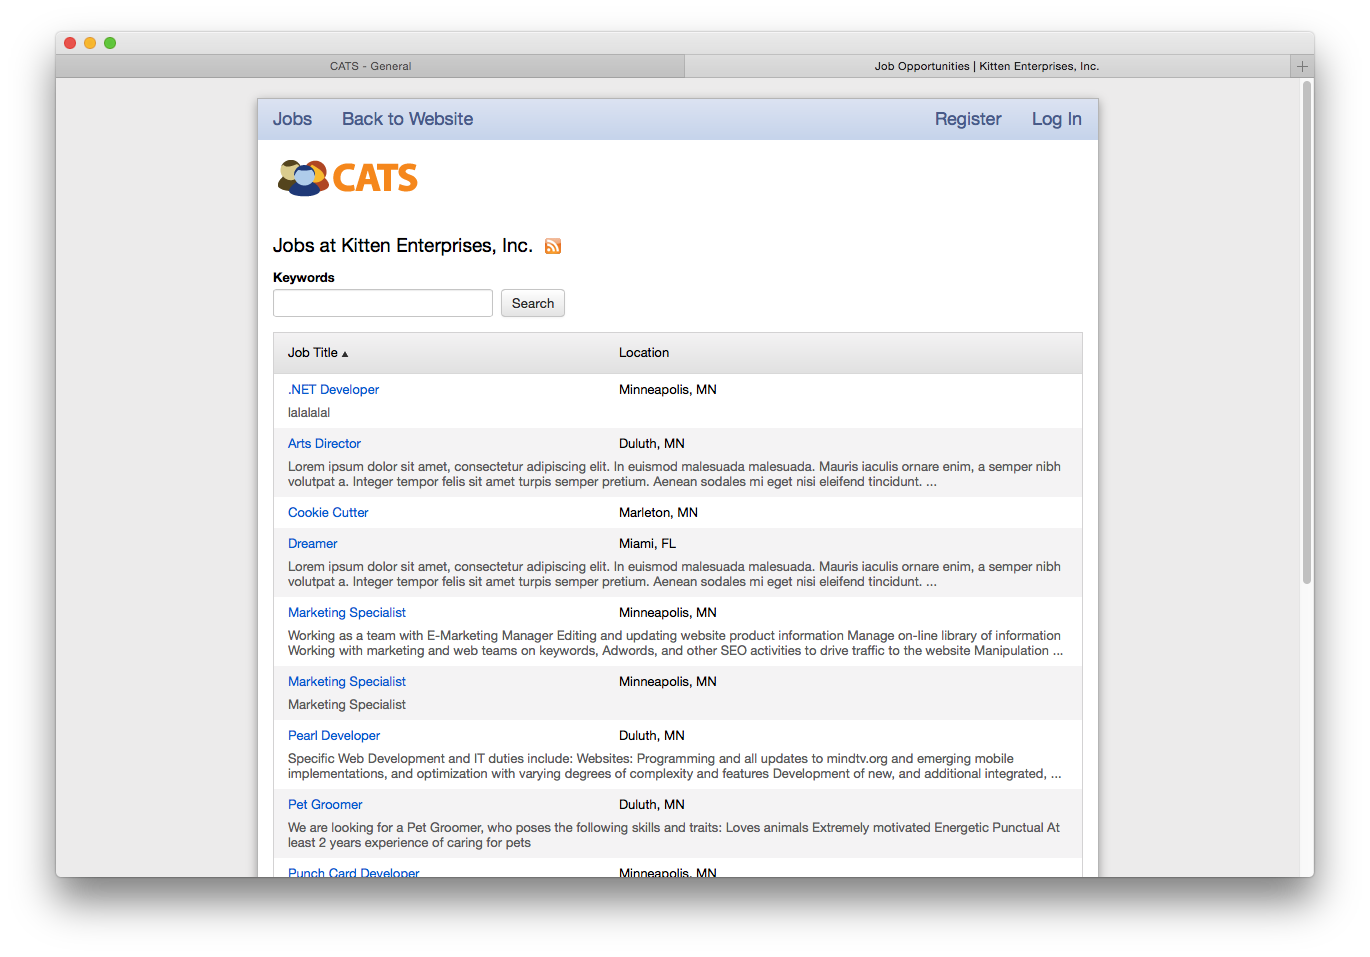 CATS' career portal can be customized to work seamlessly with the rest of a business's website.